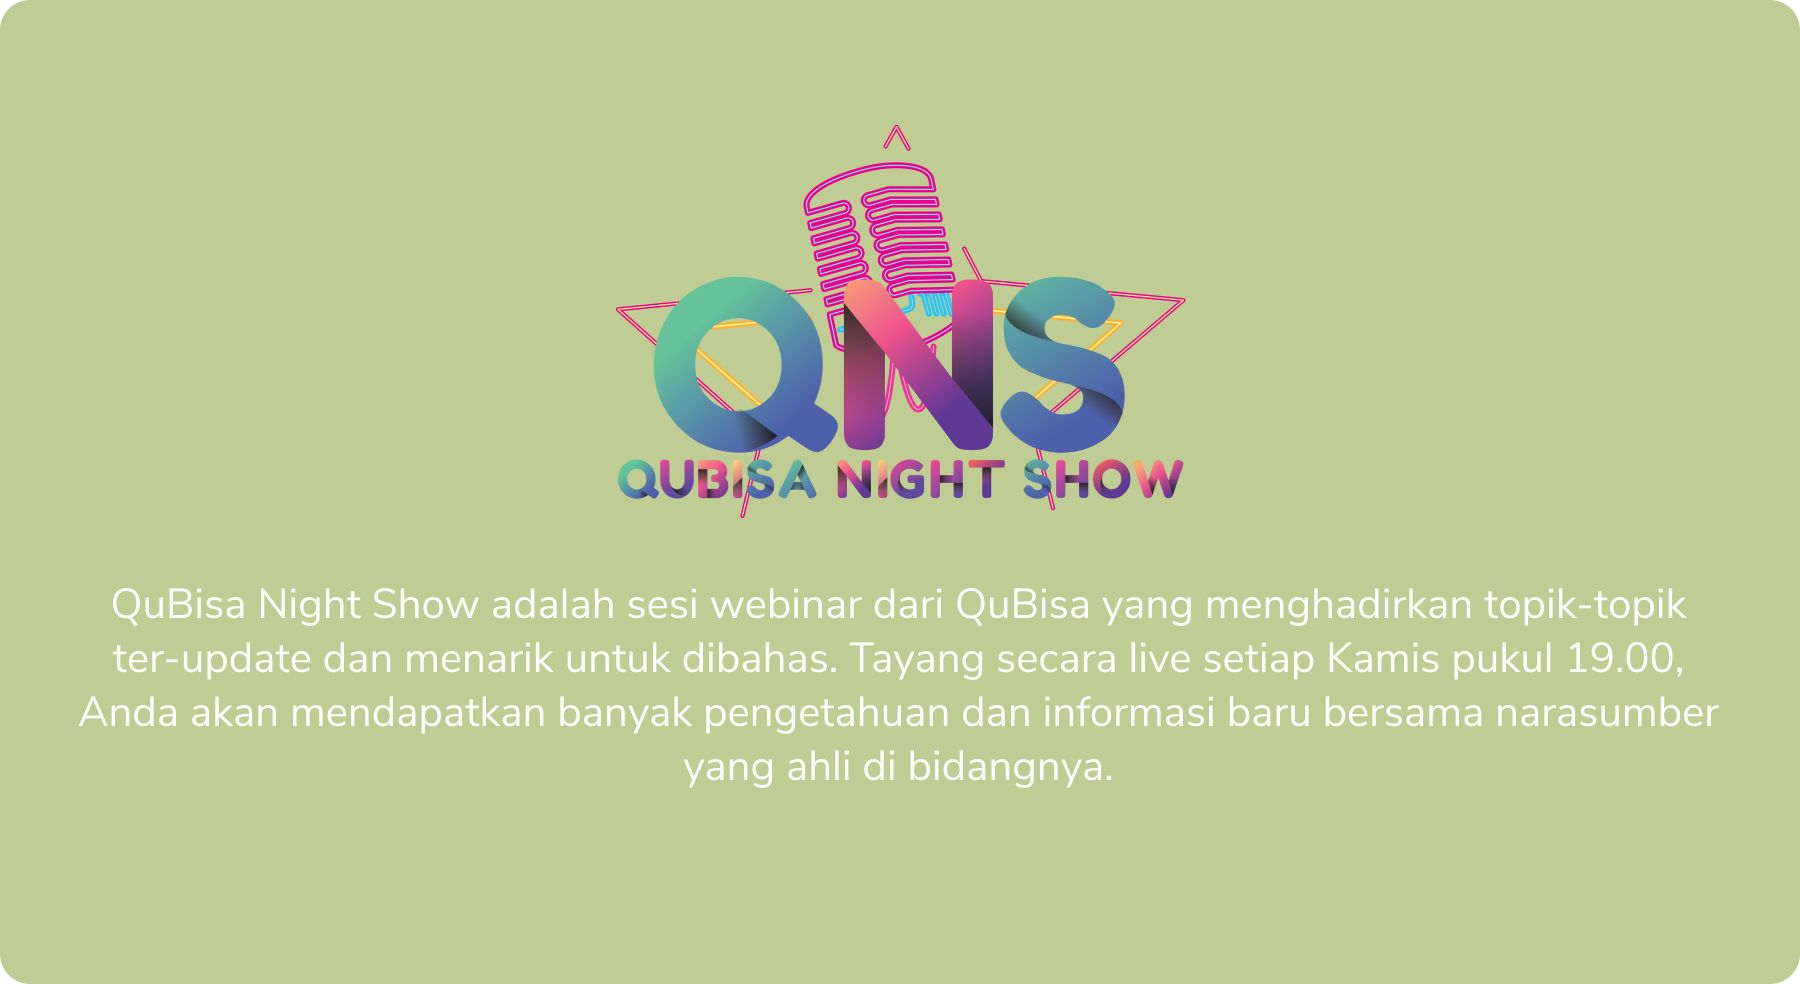 QuBisa Night Show